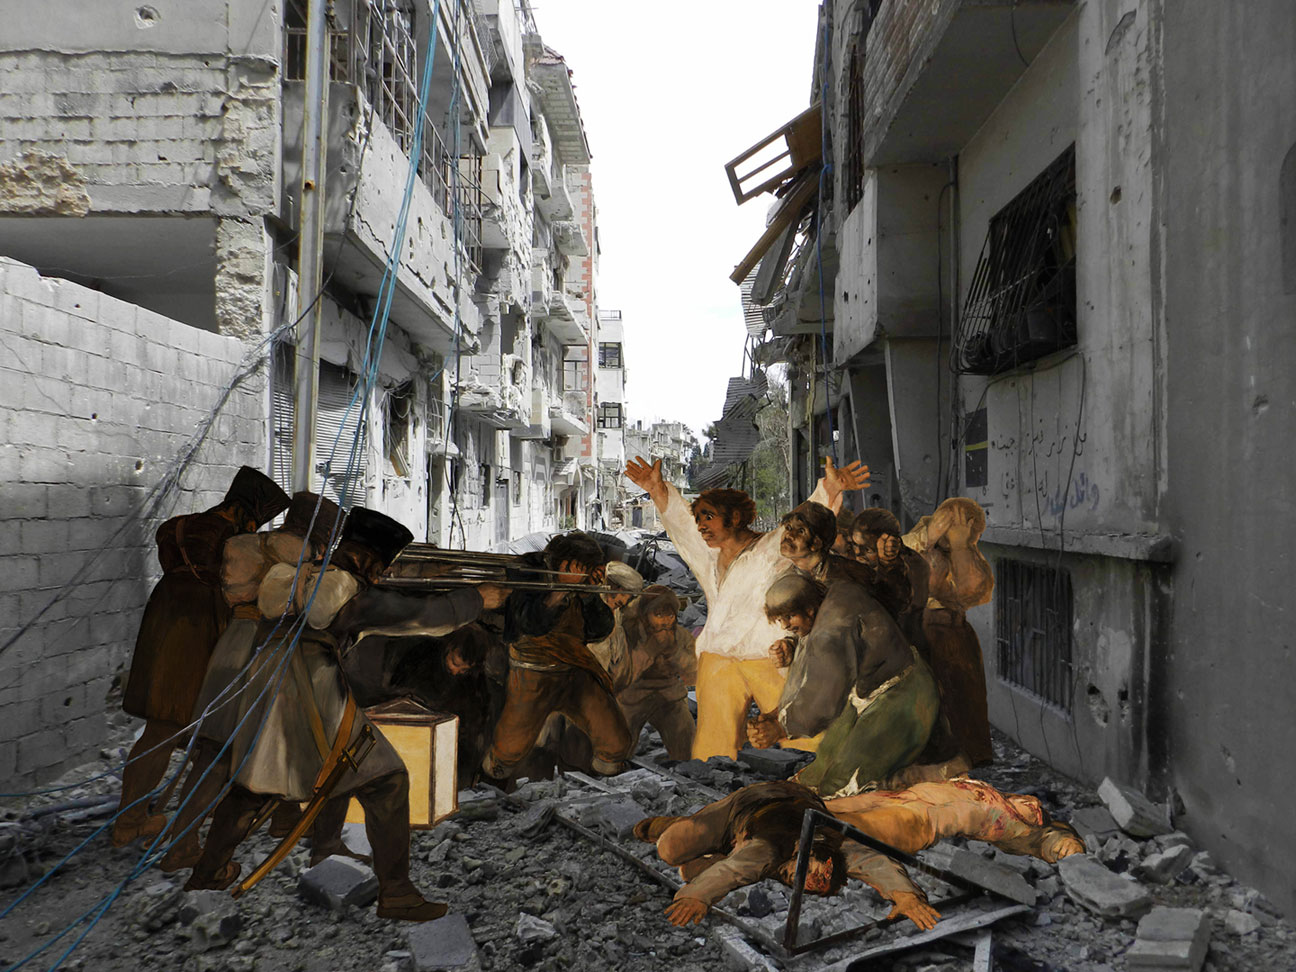 yiweilim, yi wei lim, tammam azzam, tammam azzam art, syria, syria uprising, syrian civil war, francisco goya, goya, goya third of may, spanish art, i the syrian